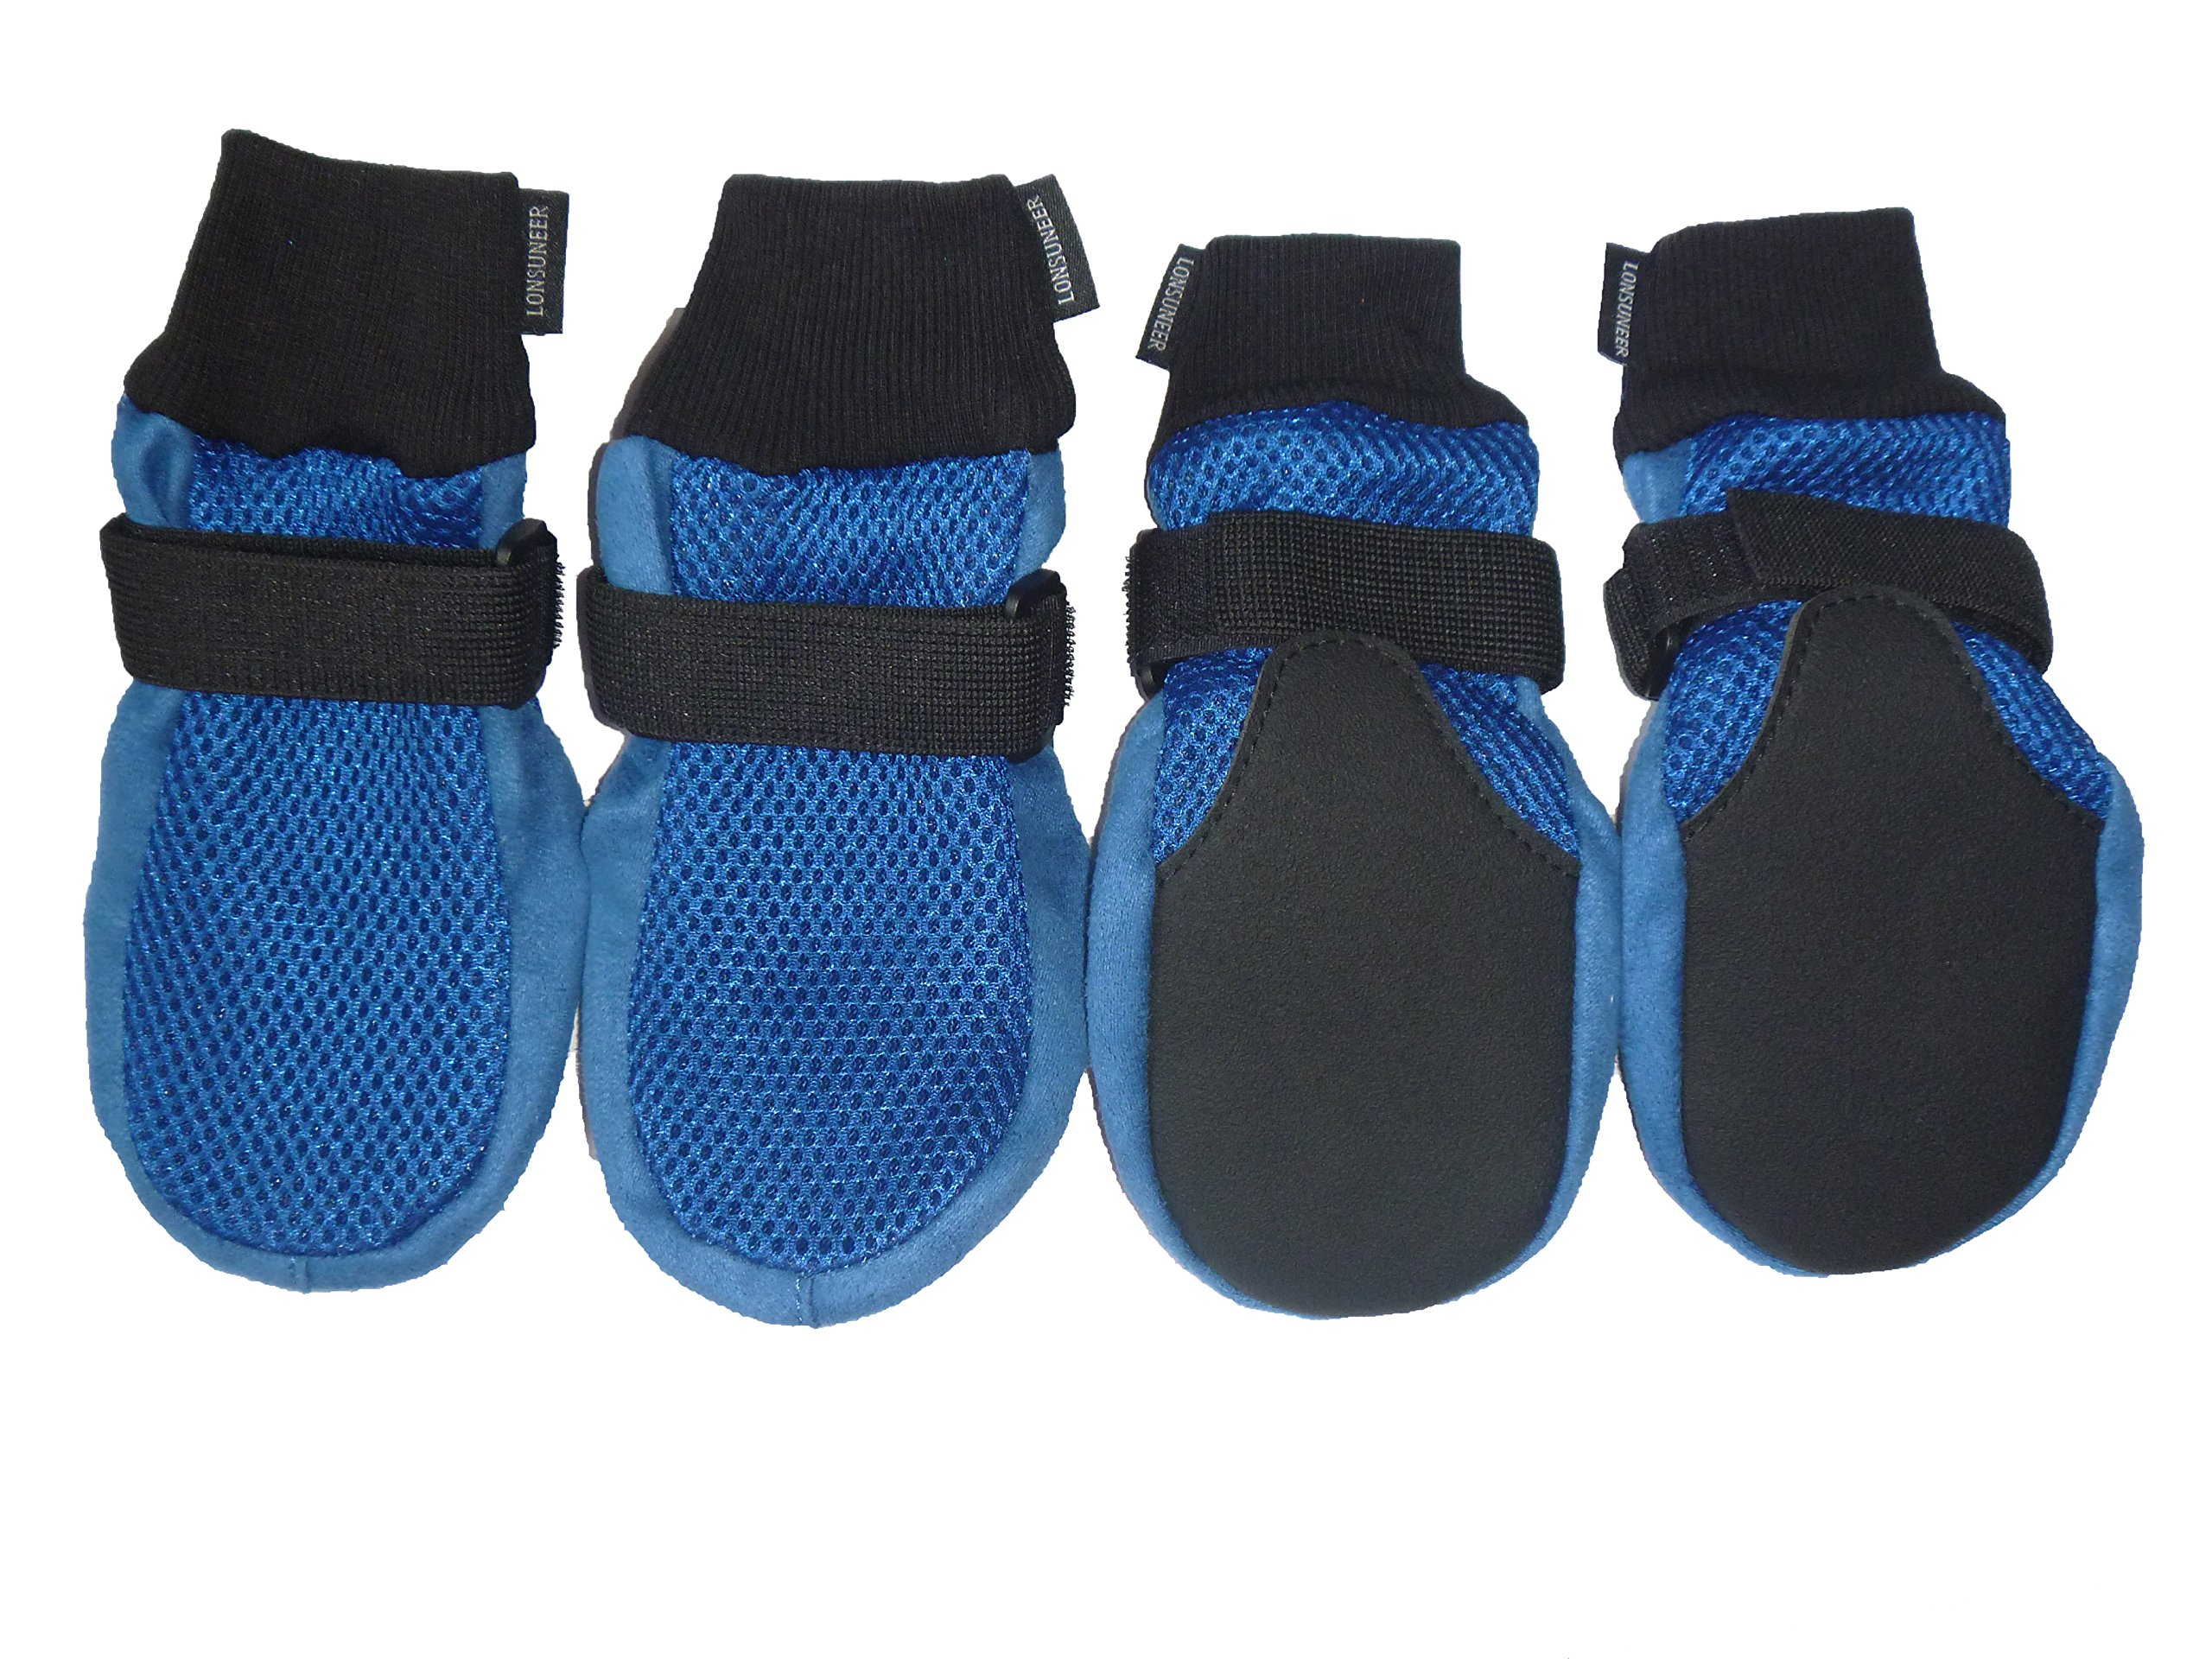 LONSUNEER Dog Boots Breathable and Protect Paws Soft Nonslip Soles Blue Color Size X-Large - Inner Sole Width 3.15 Inch